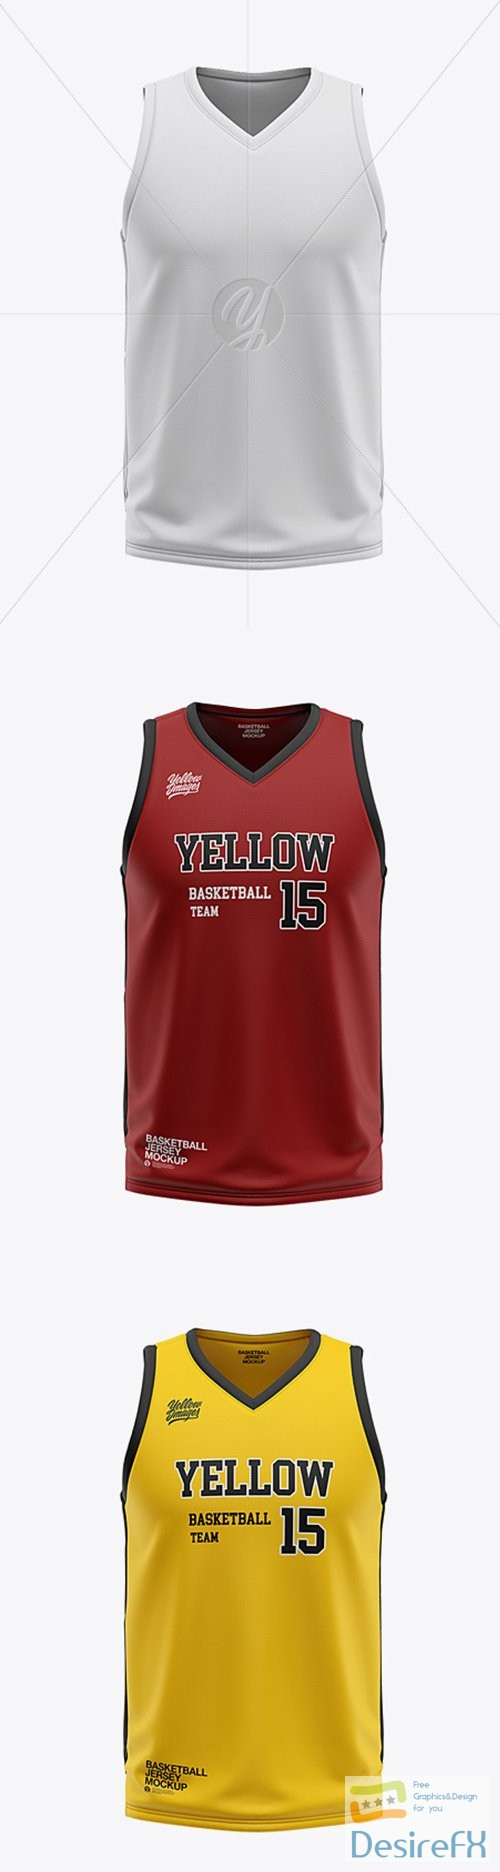 mock-up - Mens V-Neck Basketball Jersey Mockup - Front View 36056